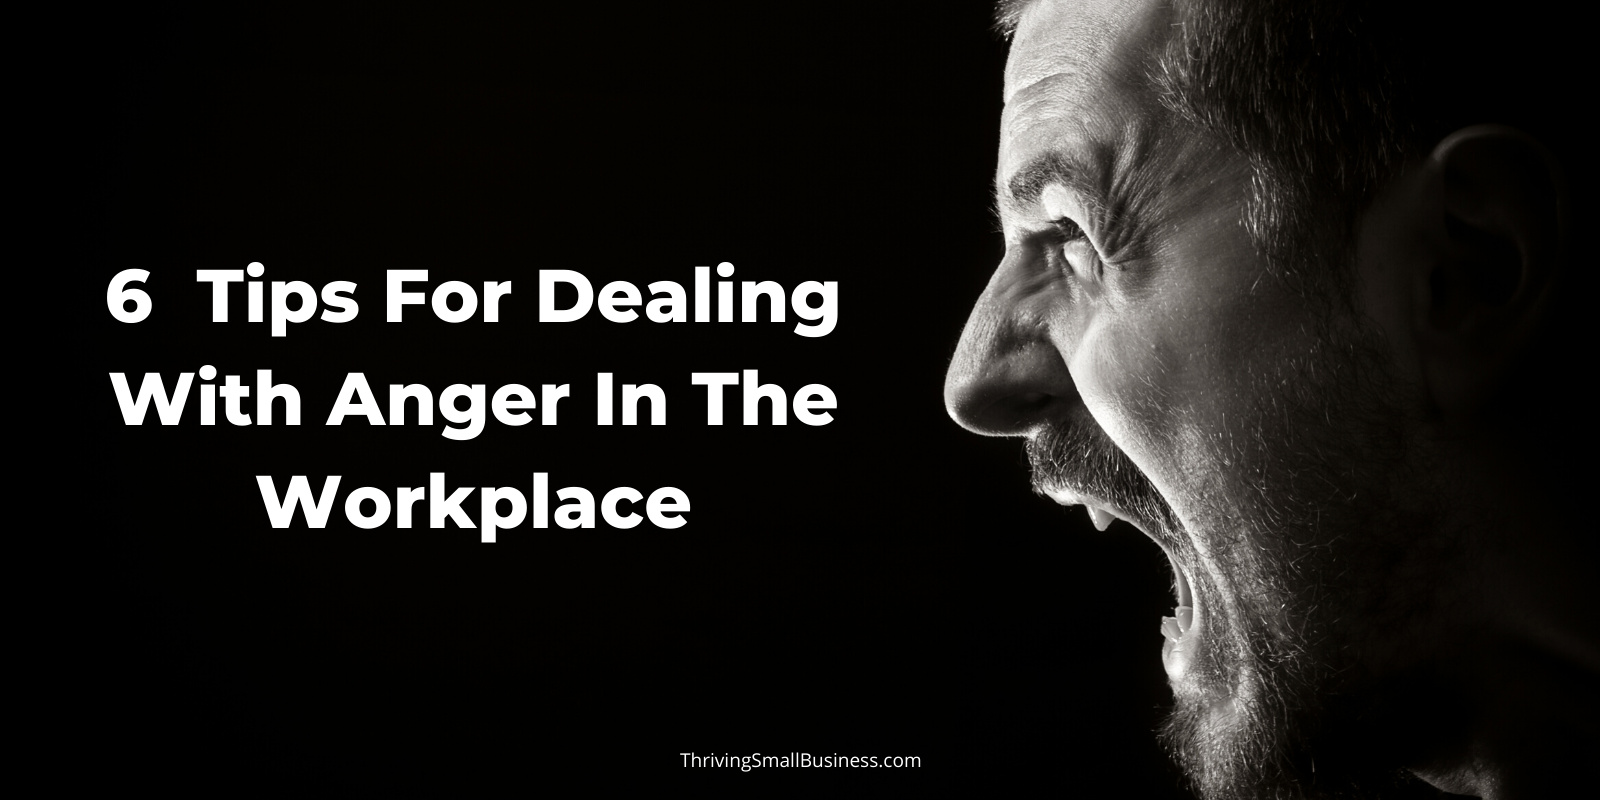 How to deal with anger in the workplace